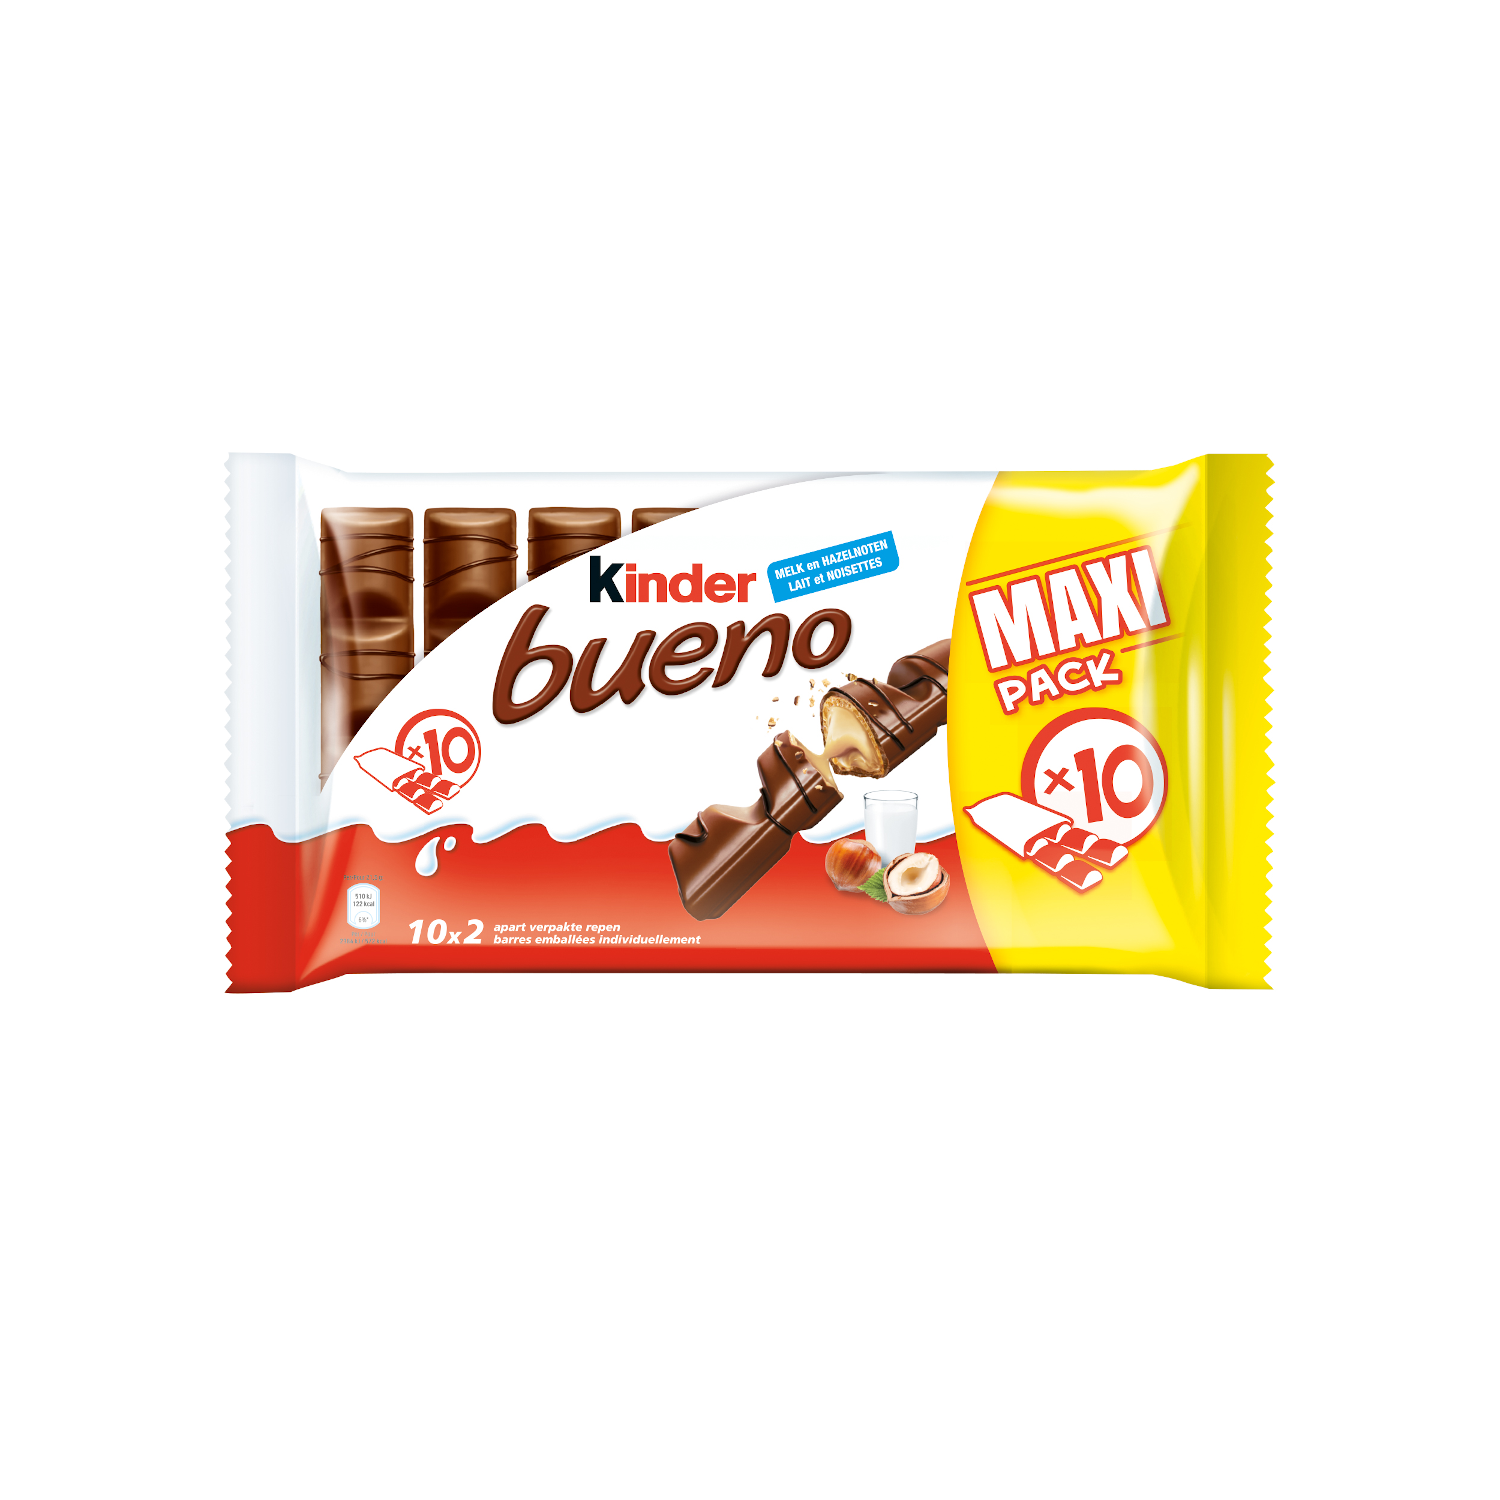 snack chocolate bar kinder bueno t10 BE-Nl